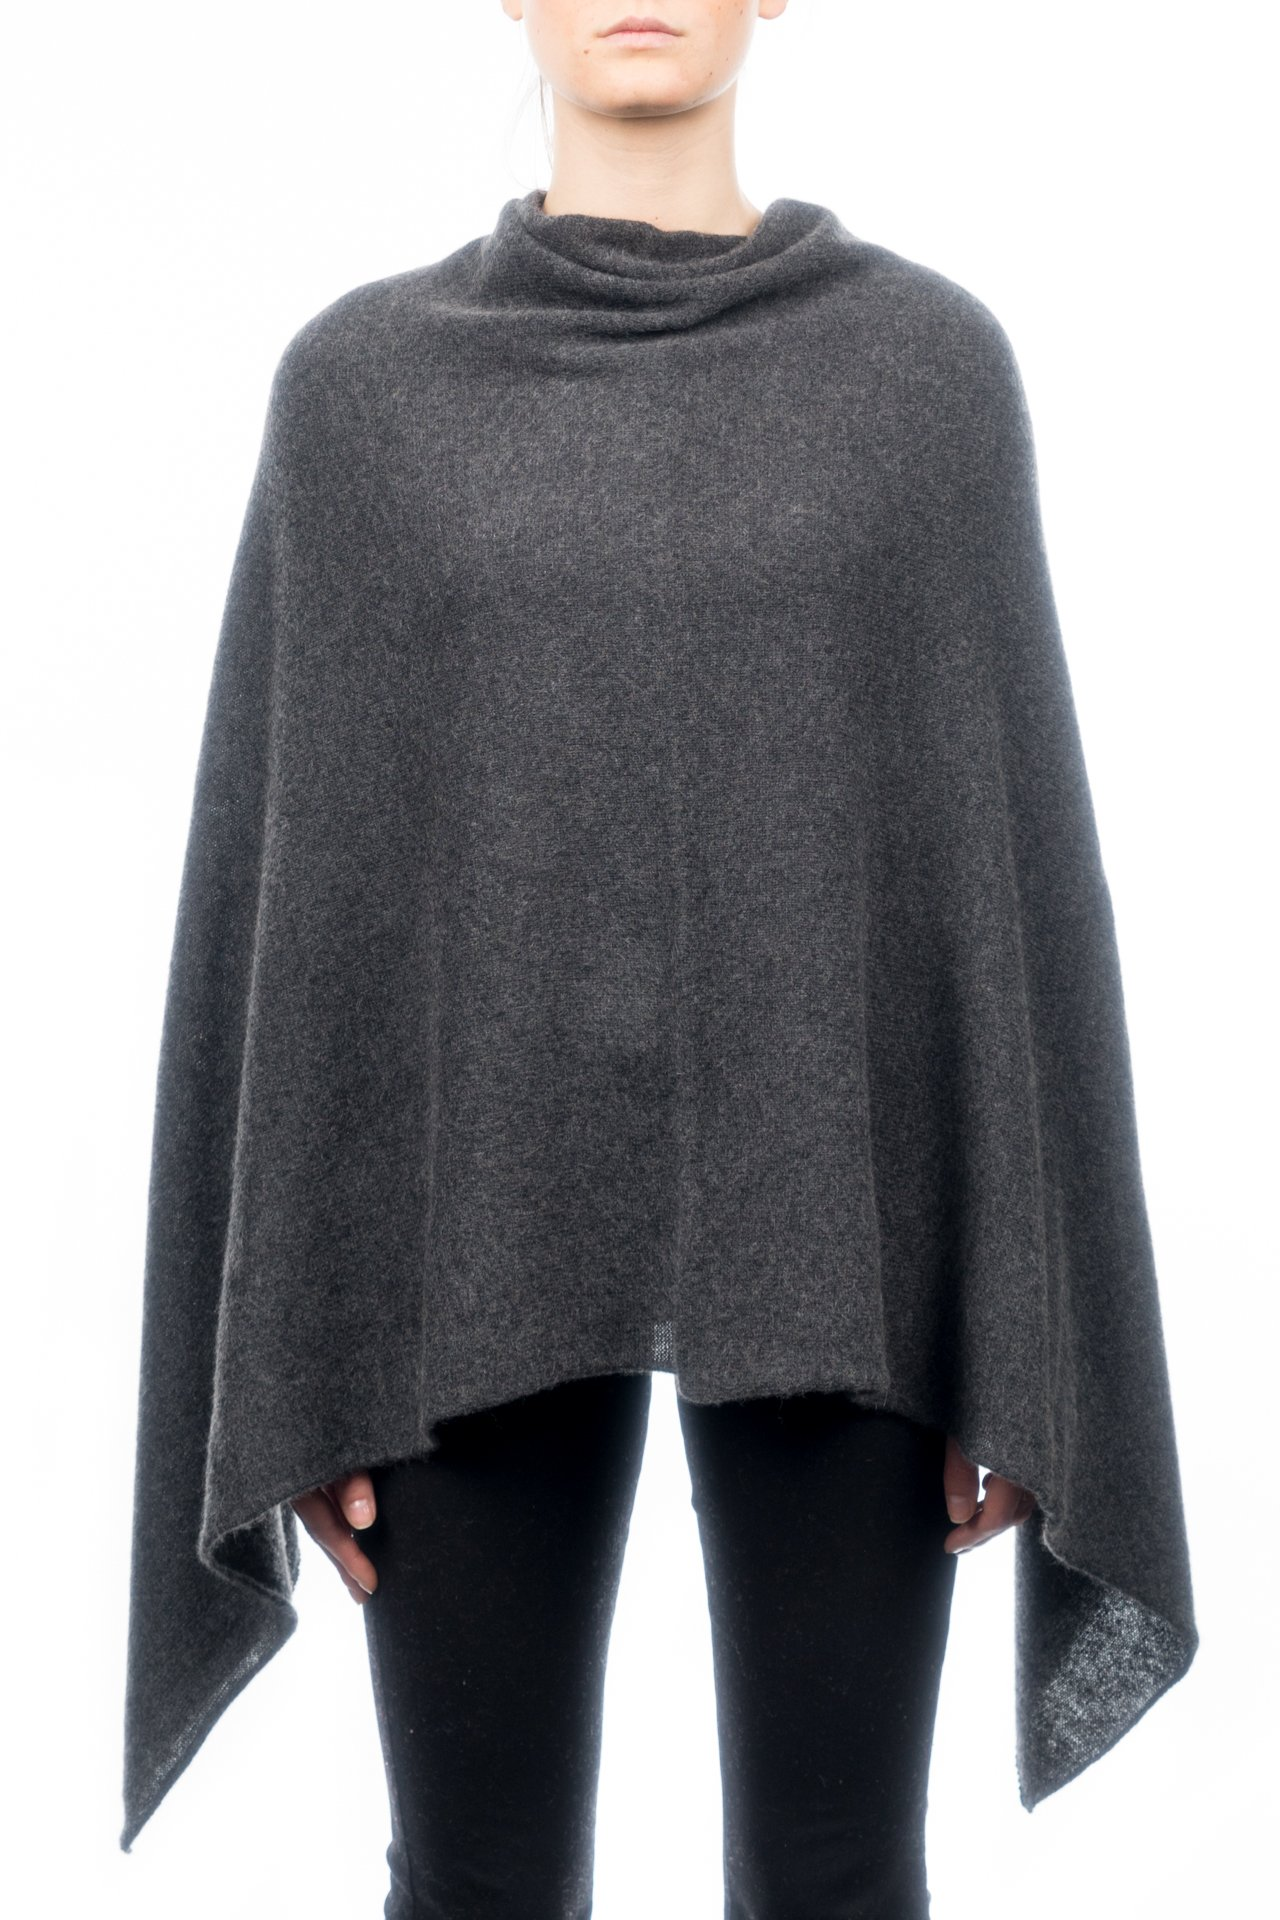 DALLE PIANE CASHMERE - Poncho 100% Cashmere - Made in Italy